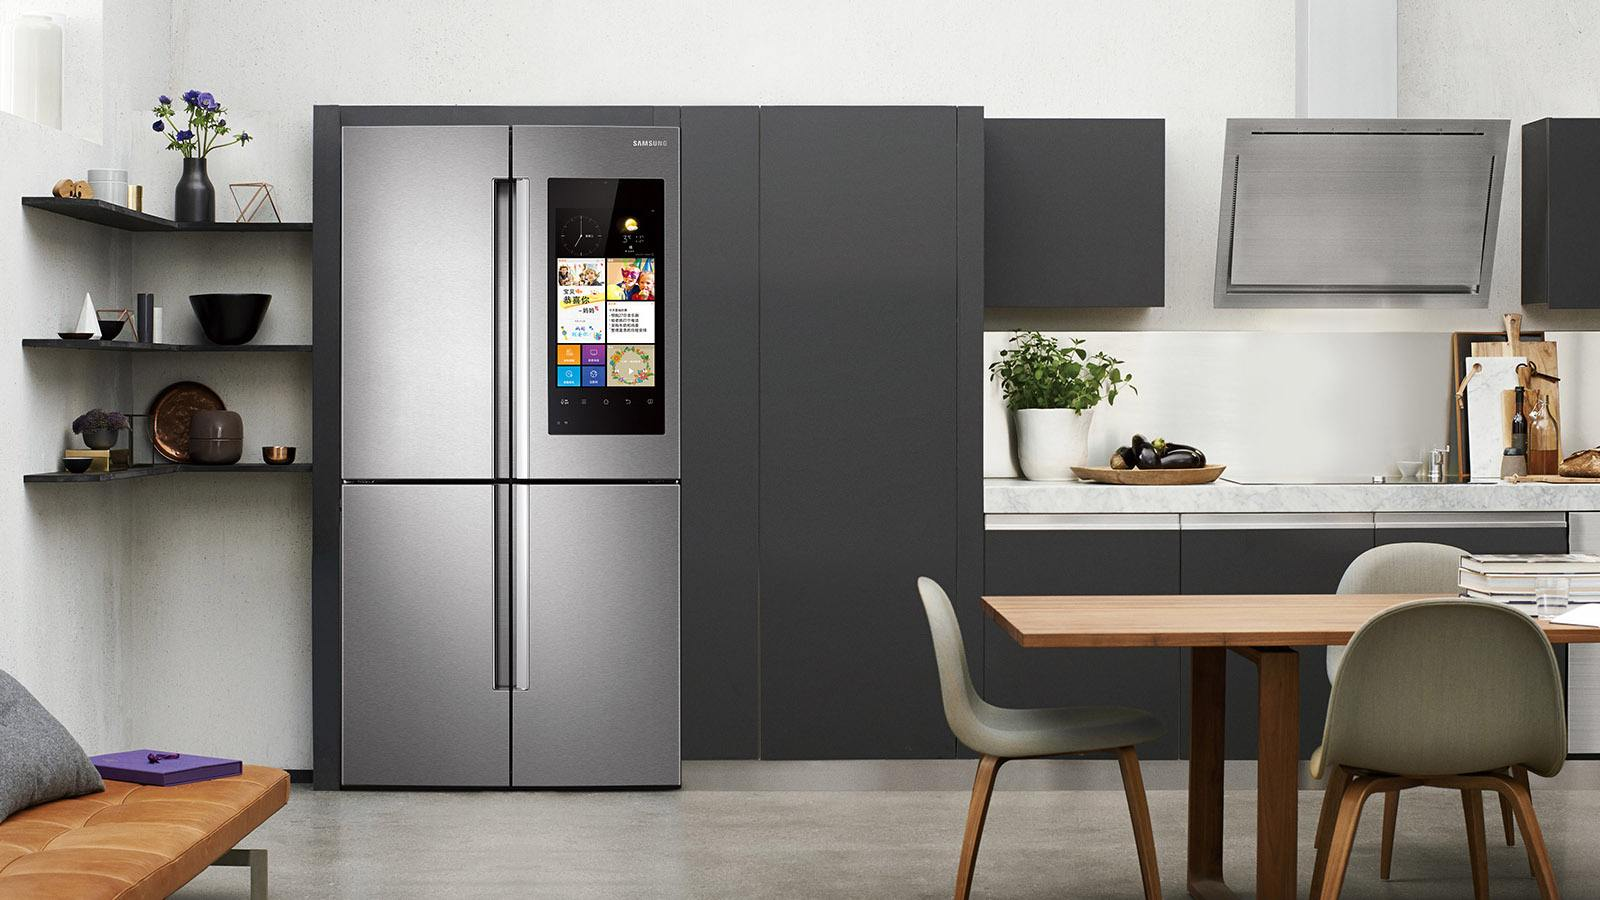 The refrigerator with aluminum